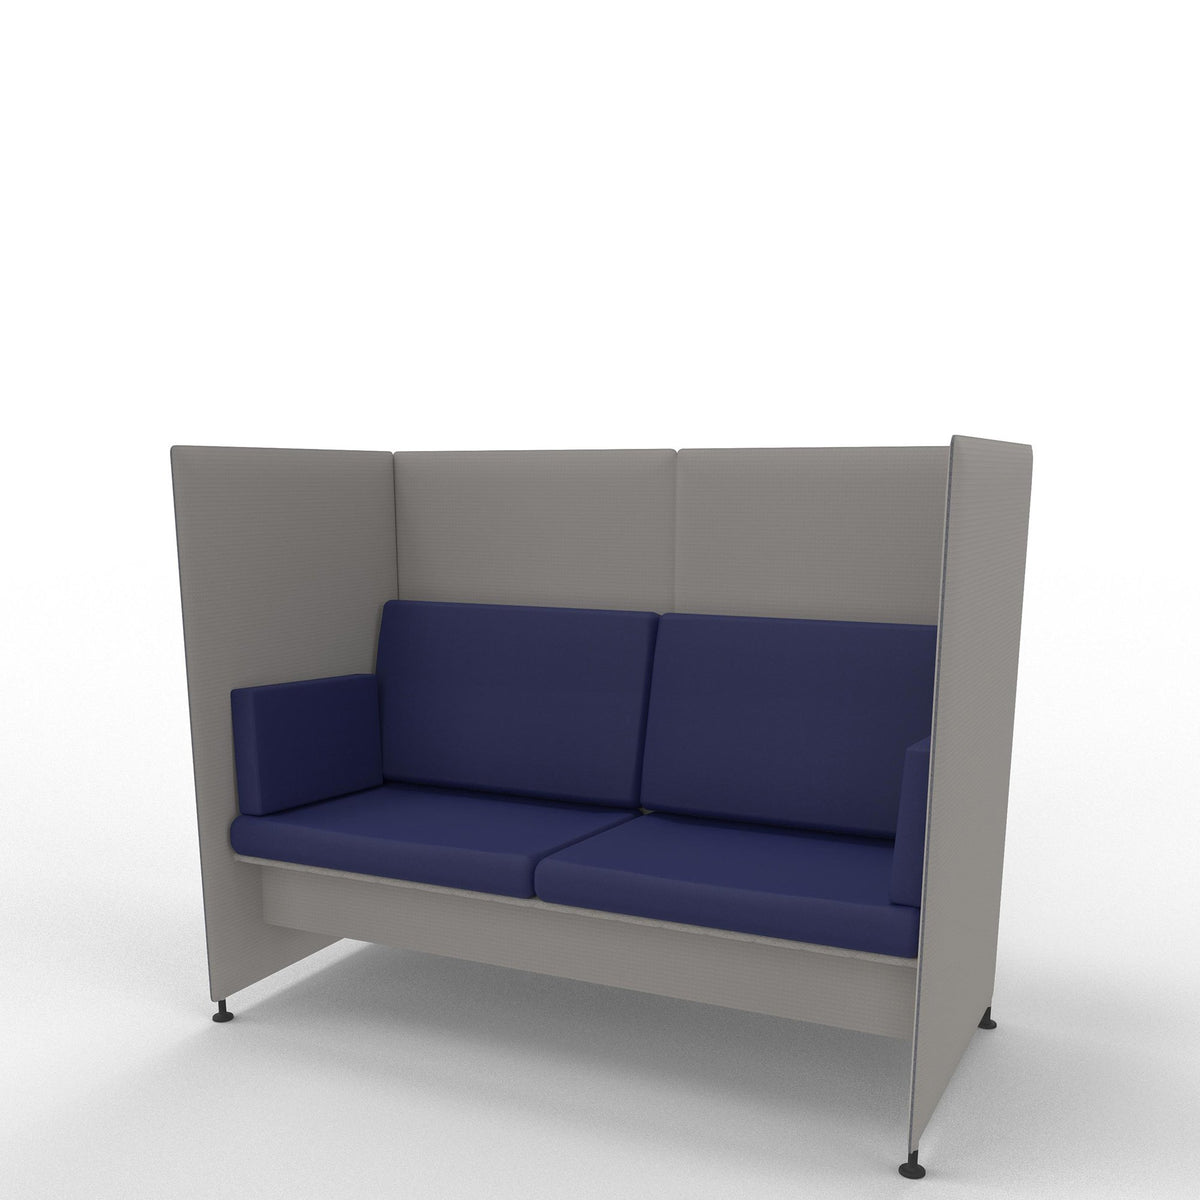 Edsbyn Ease Sofa Pod with Royal Blue Cushions